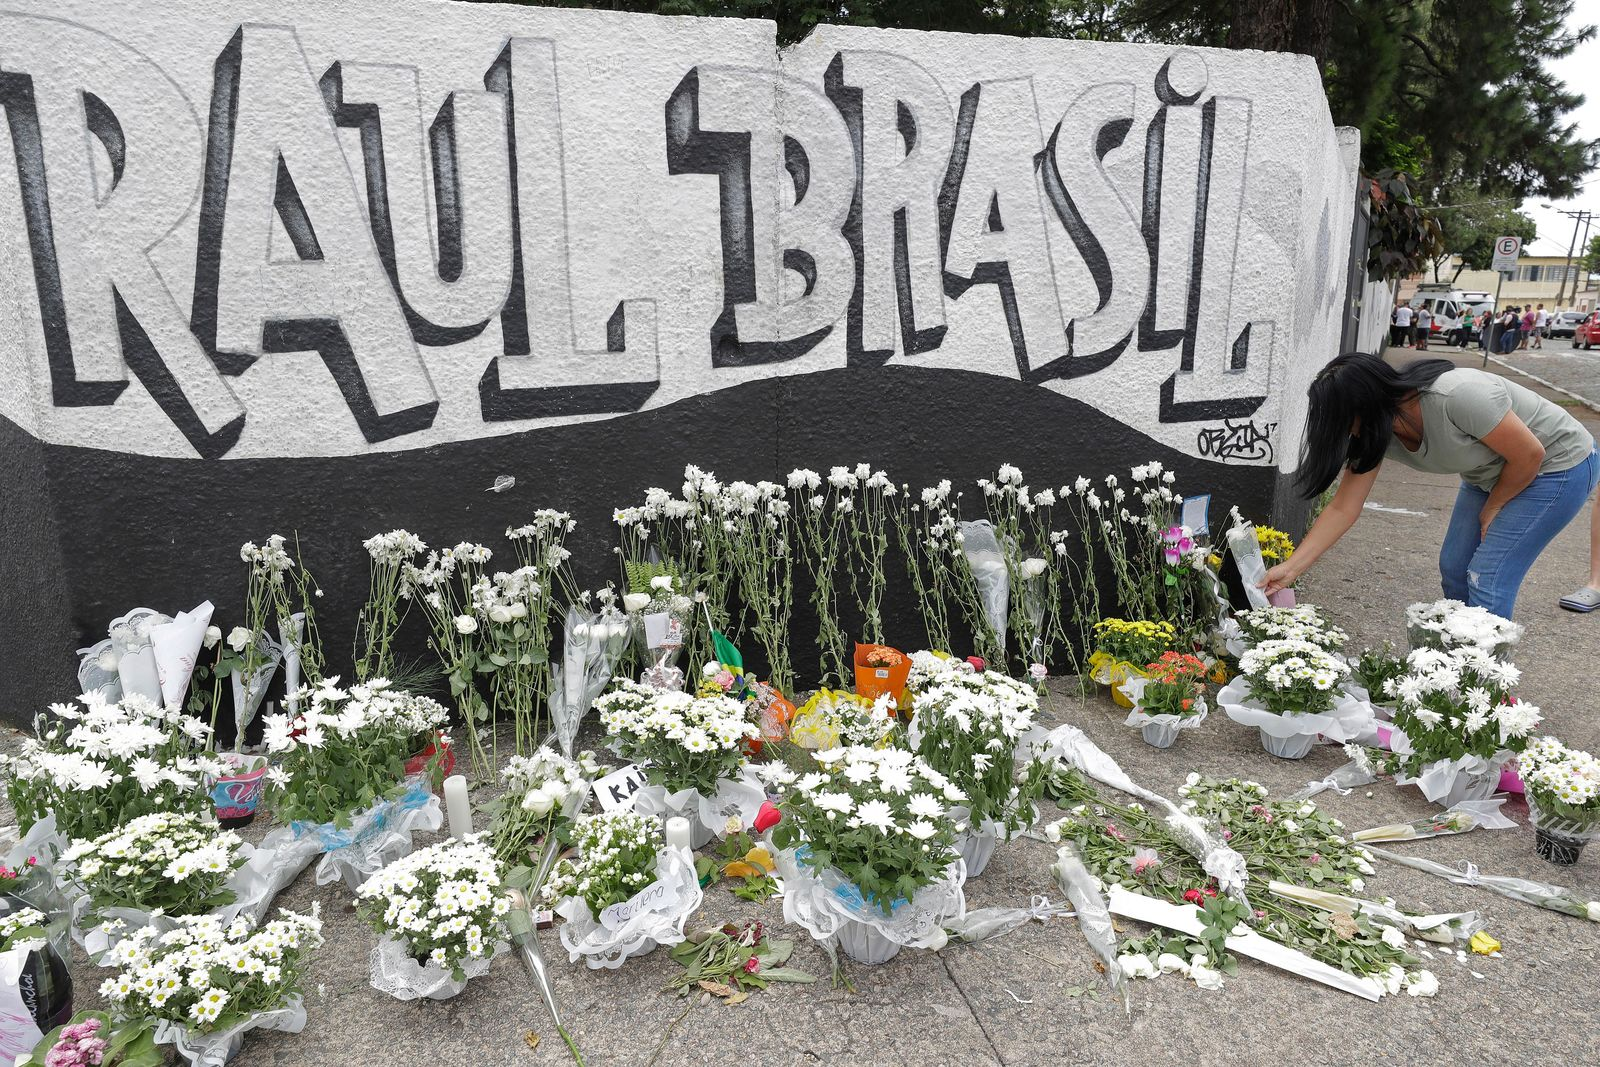 A woman leaves flowers one day after a mass, school shooting outside the Raul Brasil state school  in Suzano, Brazil, Thursday, March 14, 2019. (AP Photo/Andre Penner)